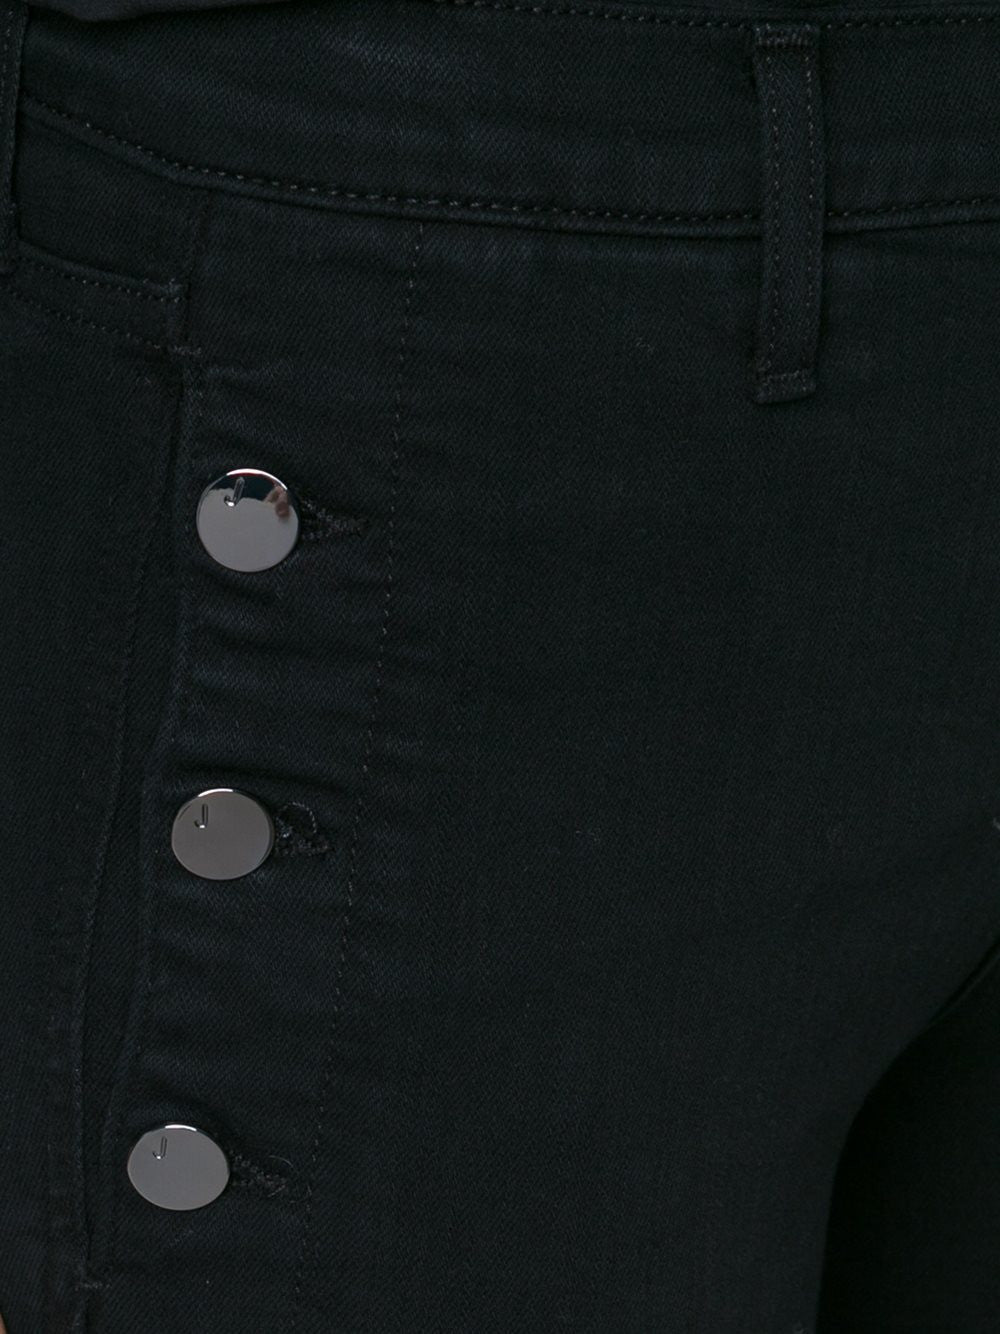 Button-Pocket Skinny Jean | ZION MD SKINNY W/BUTTONS-JB000